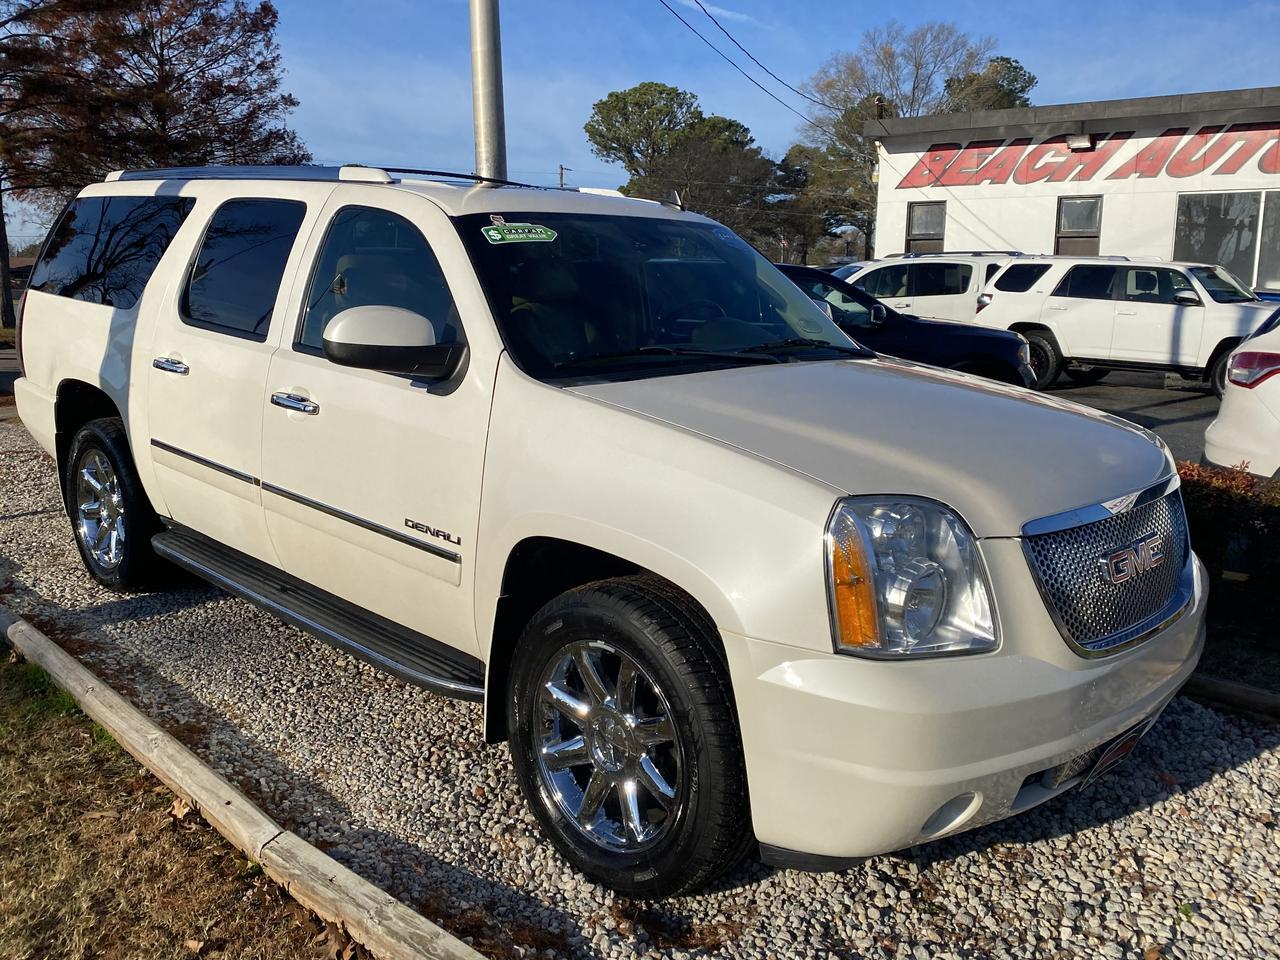 2011 GMC YUKON DENALI XL, WARRANTY, LEATHER, NAV, HEATED/COOLED SEATS, DVD PLAYER, SUNROOF, FULLY LOADED, 1 OWNER! Norfolk VA